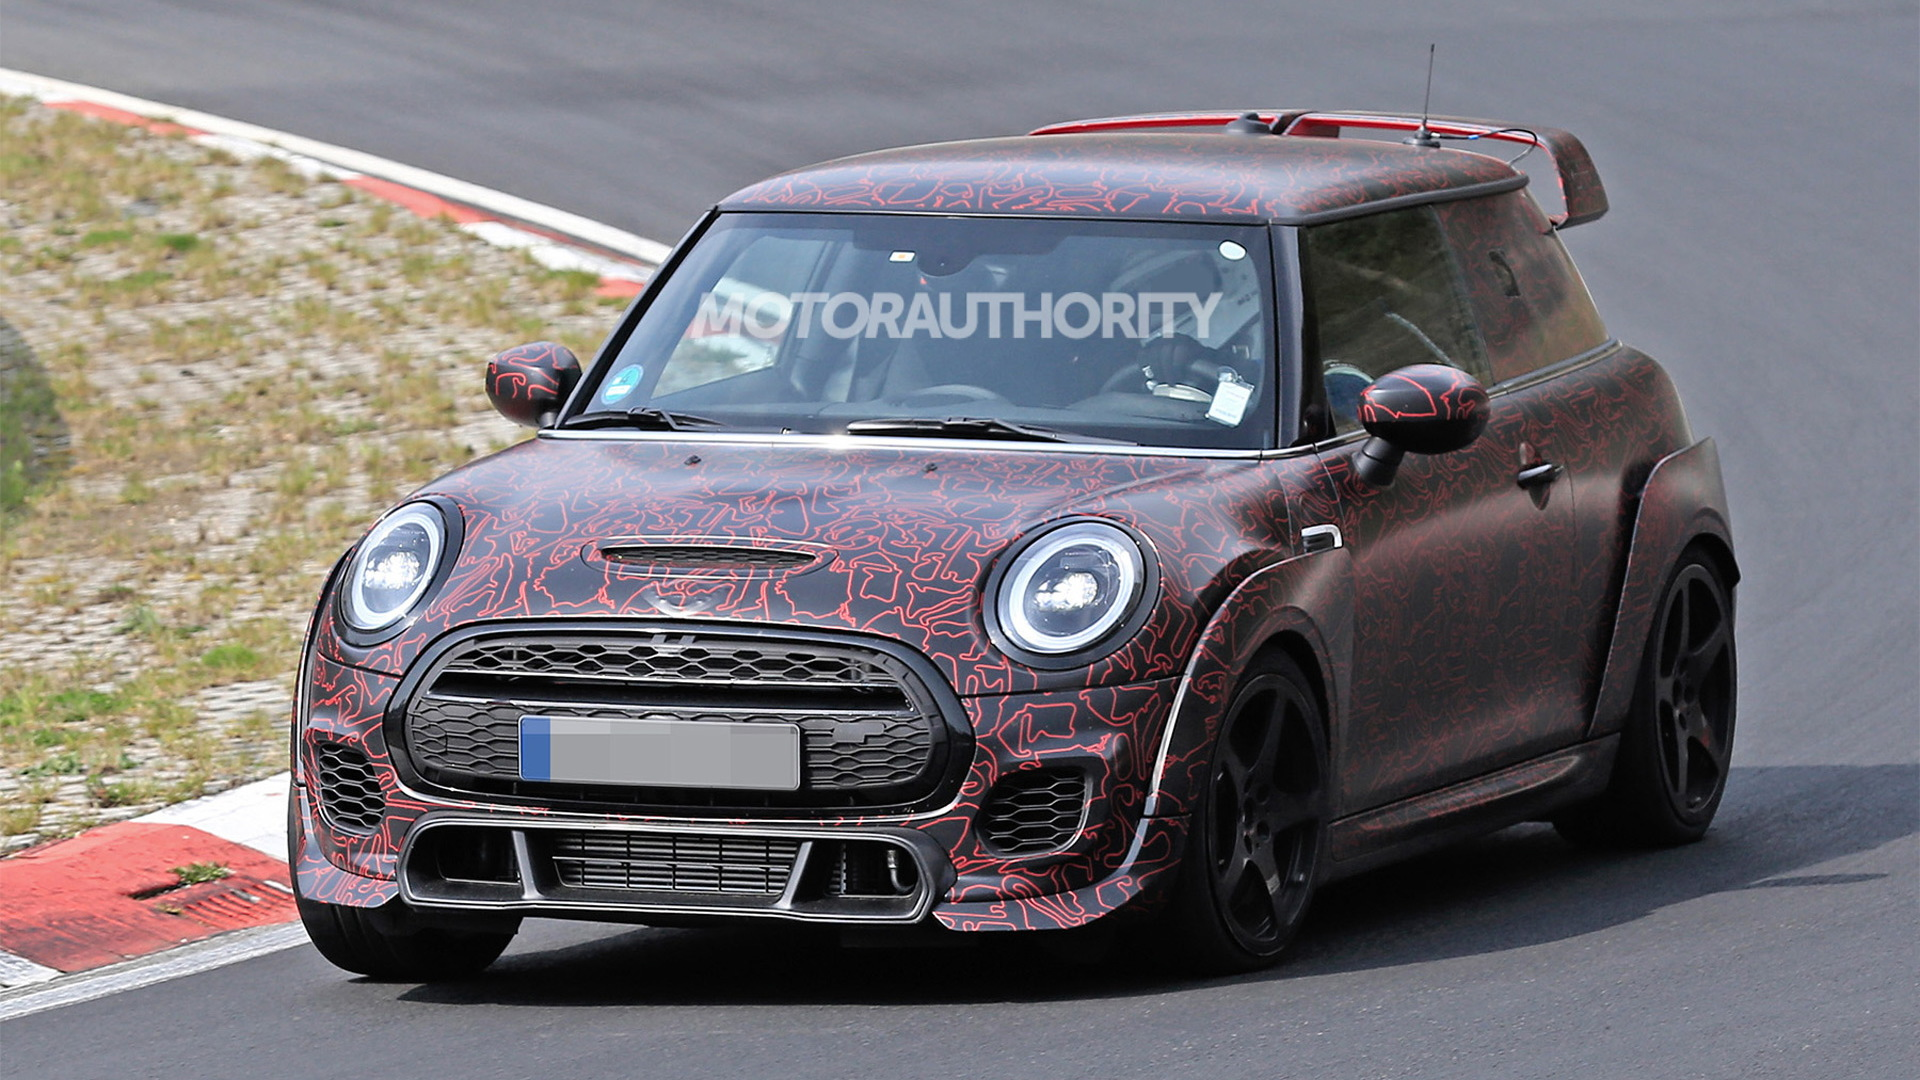 2021 Mini John Cooper Works GP spy shots - Image via S. Baldauf/SB-Medien